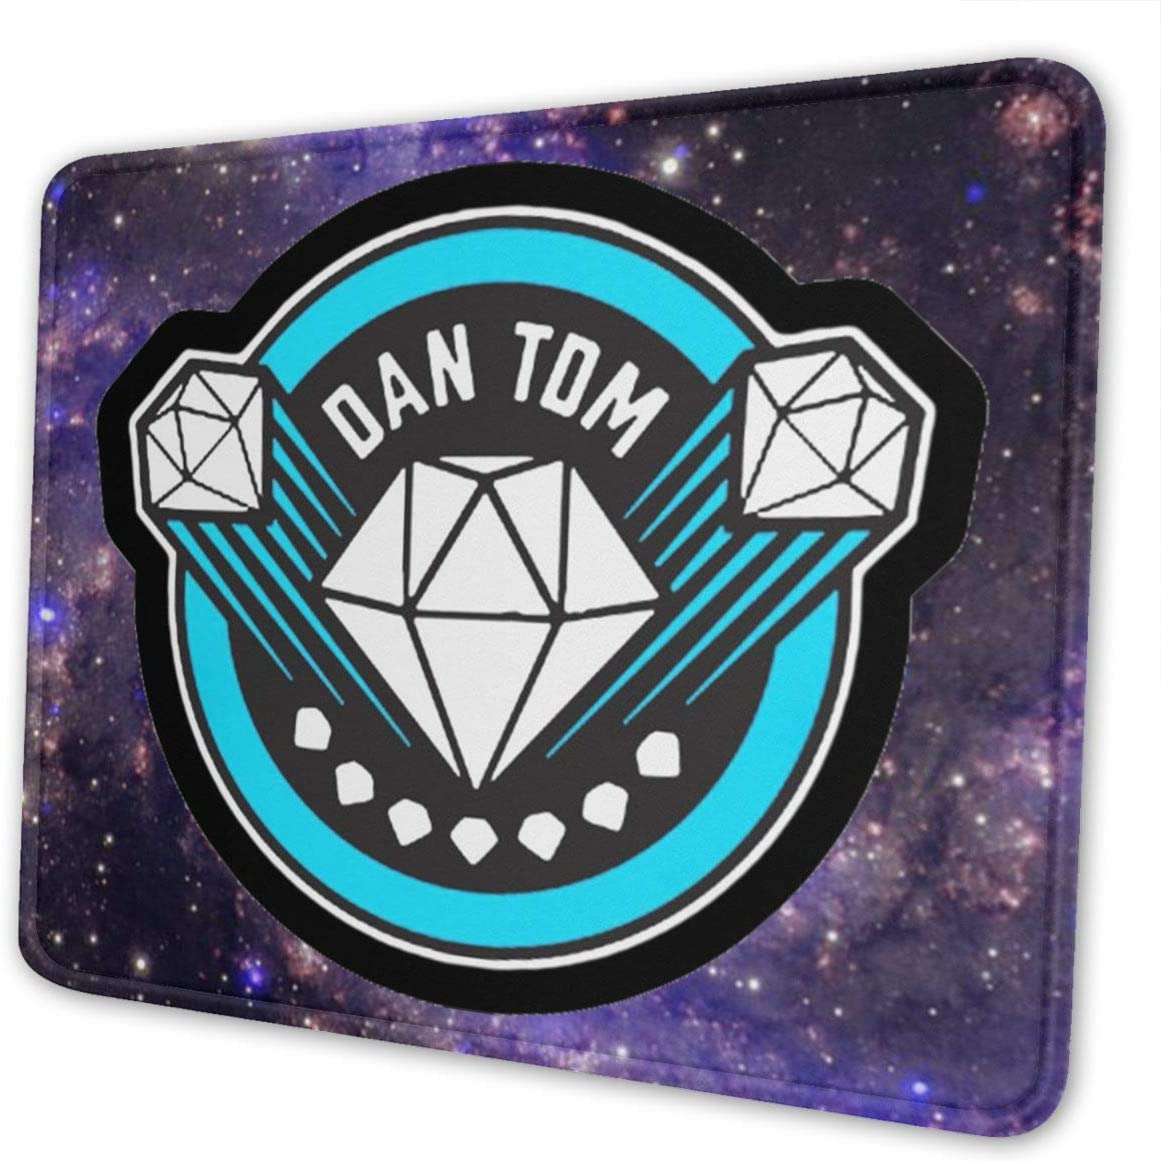 DanTDM Dan TDM Logo Personalized Computer Mouse Pad with Non-Slip Rubber Base Premium-Textured Stitched Edges Mouse Pads for Computers Laptop Office /& Home 10 X 12 Inch